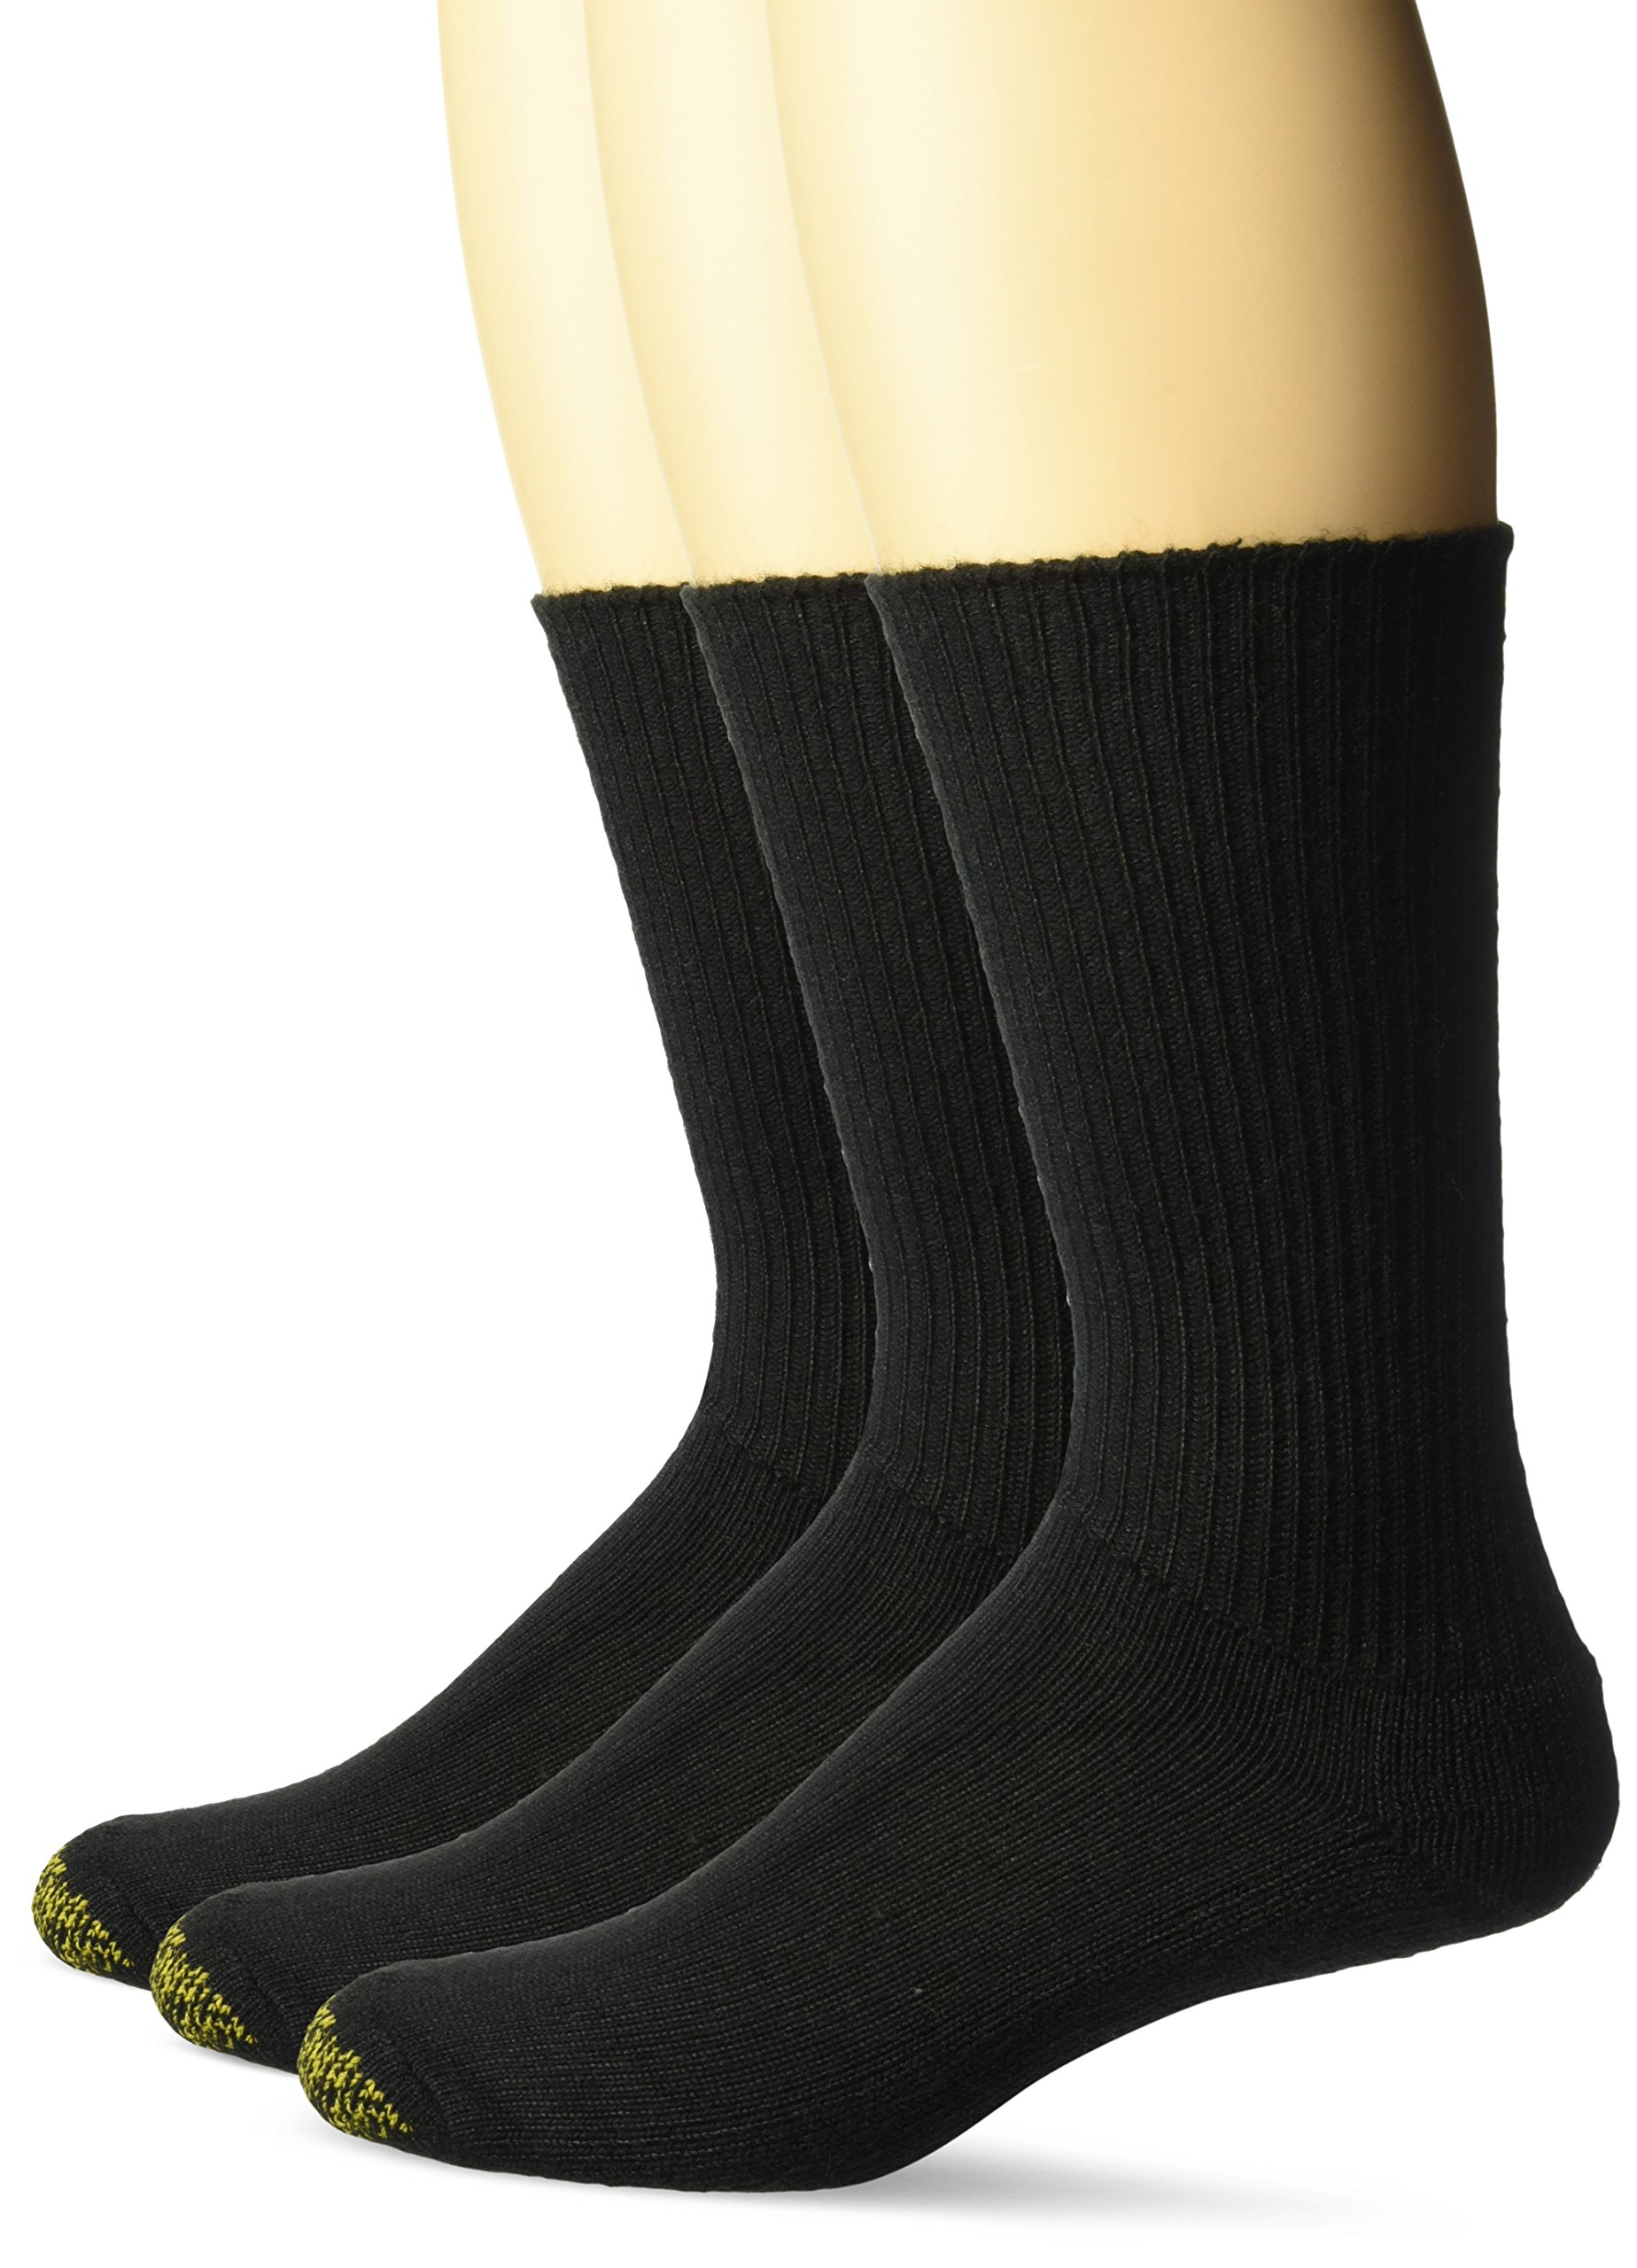 Gold Toe Men's Cushion Foot Fluffies Sock - One Size - Black, 3-Pack